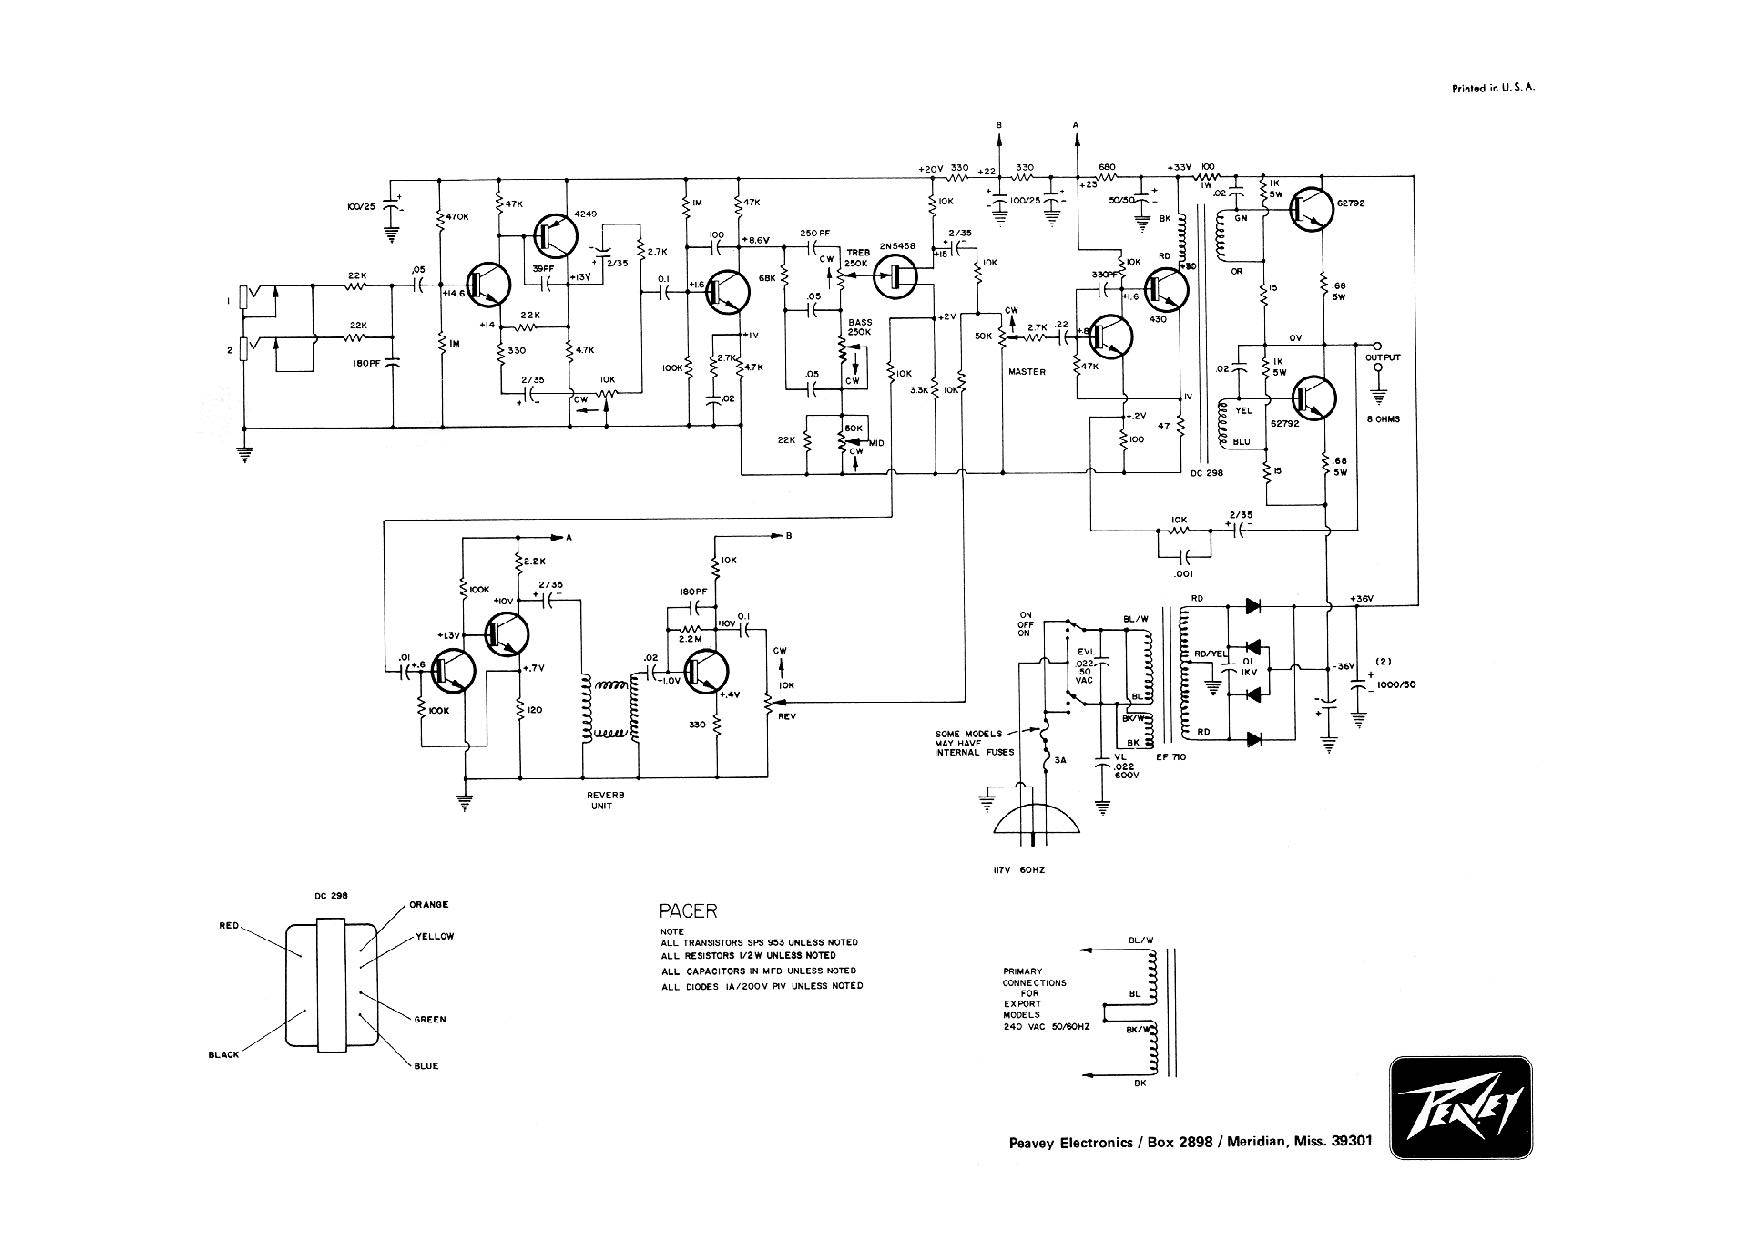 Electric Guitar Hsh Wiring Diagram In Addition Gibson Les Paul Likewise Link 4 Peaveypacer Etykieta Stan Dobry Mimo 20 Lat